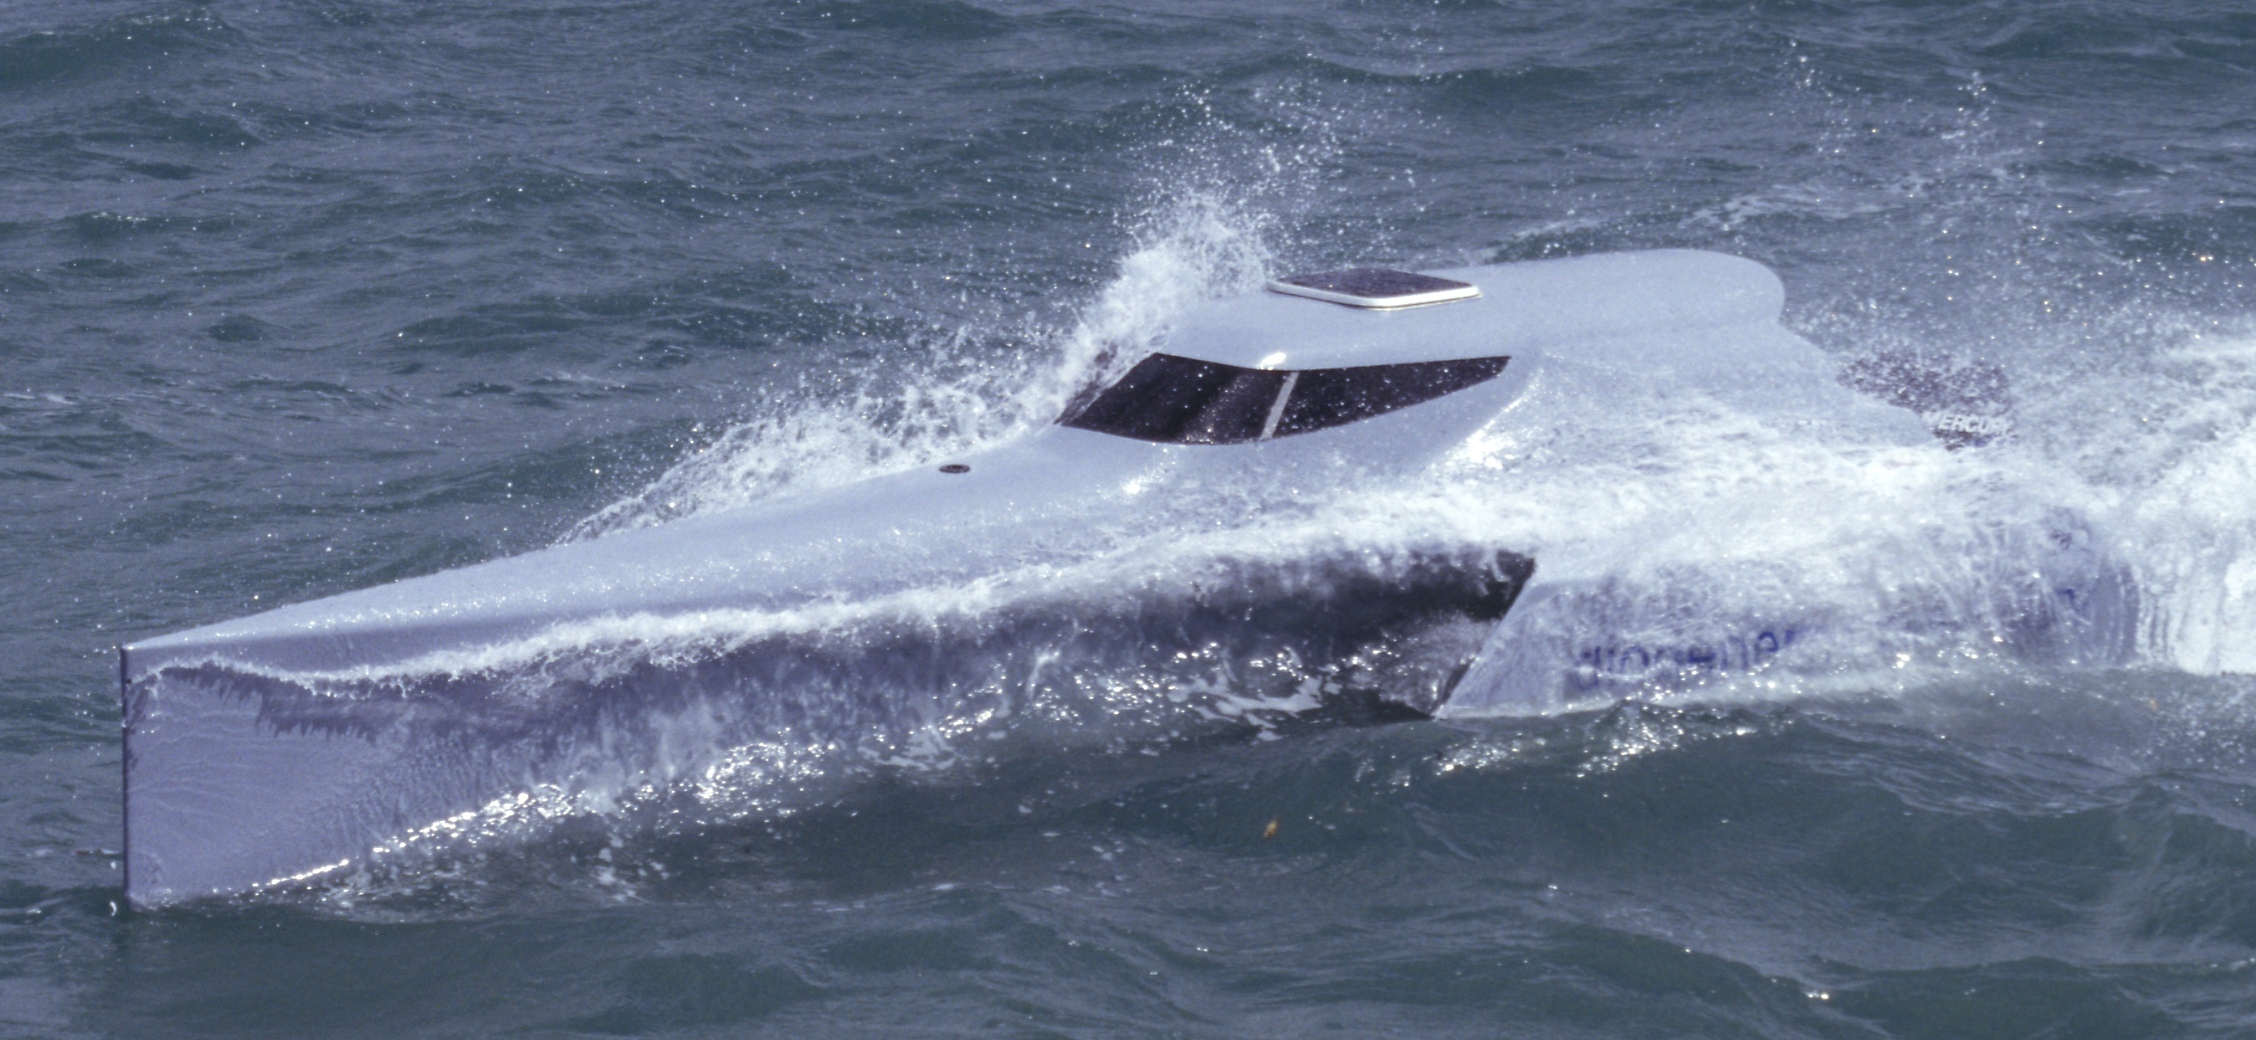 New Craft With Wave piercing Hull Design Catsailorcom